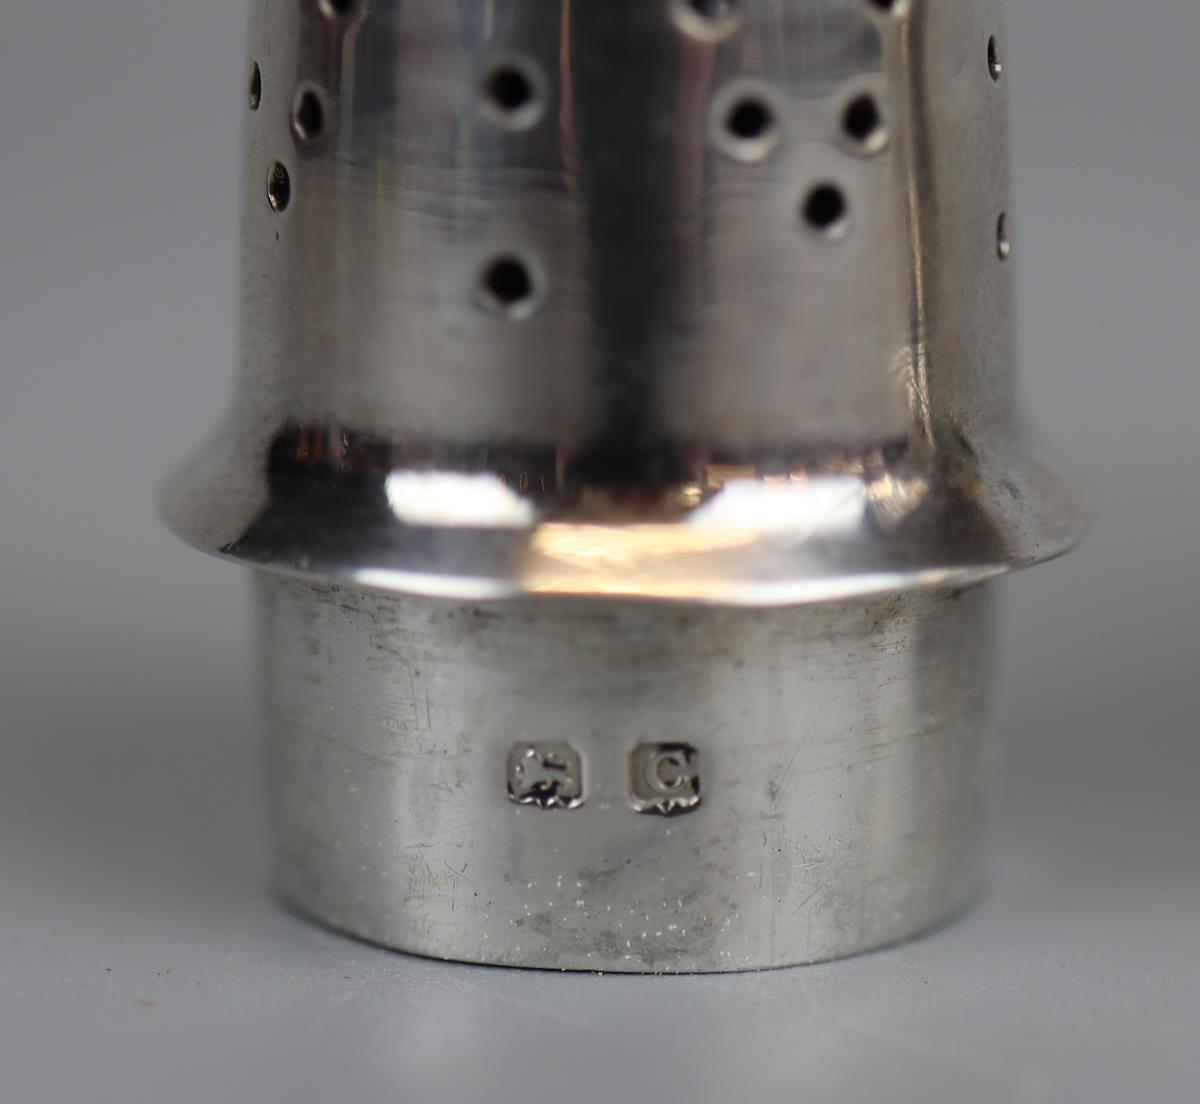 Hallmarked silver pepper pot - Charles Wilkes - 1927 - Approx 50g - Image 3 of 3